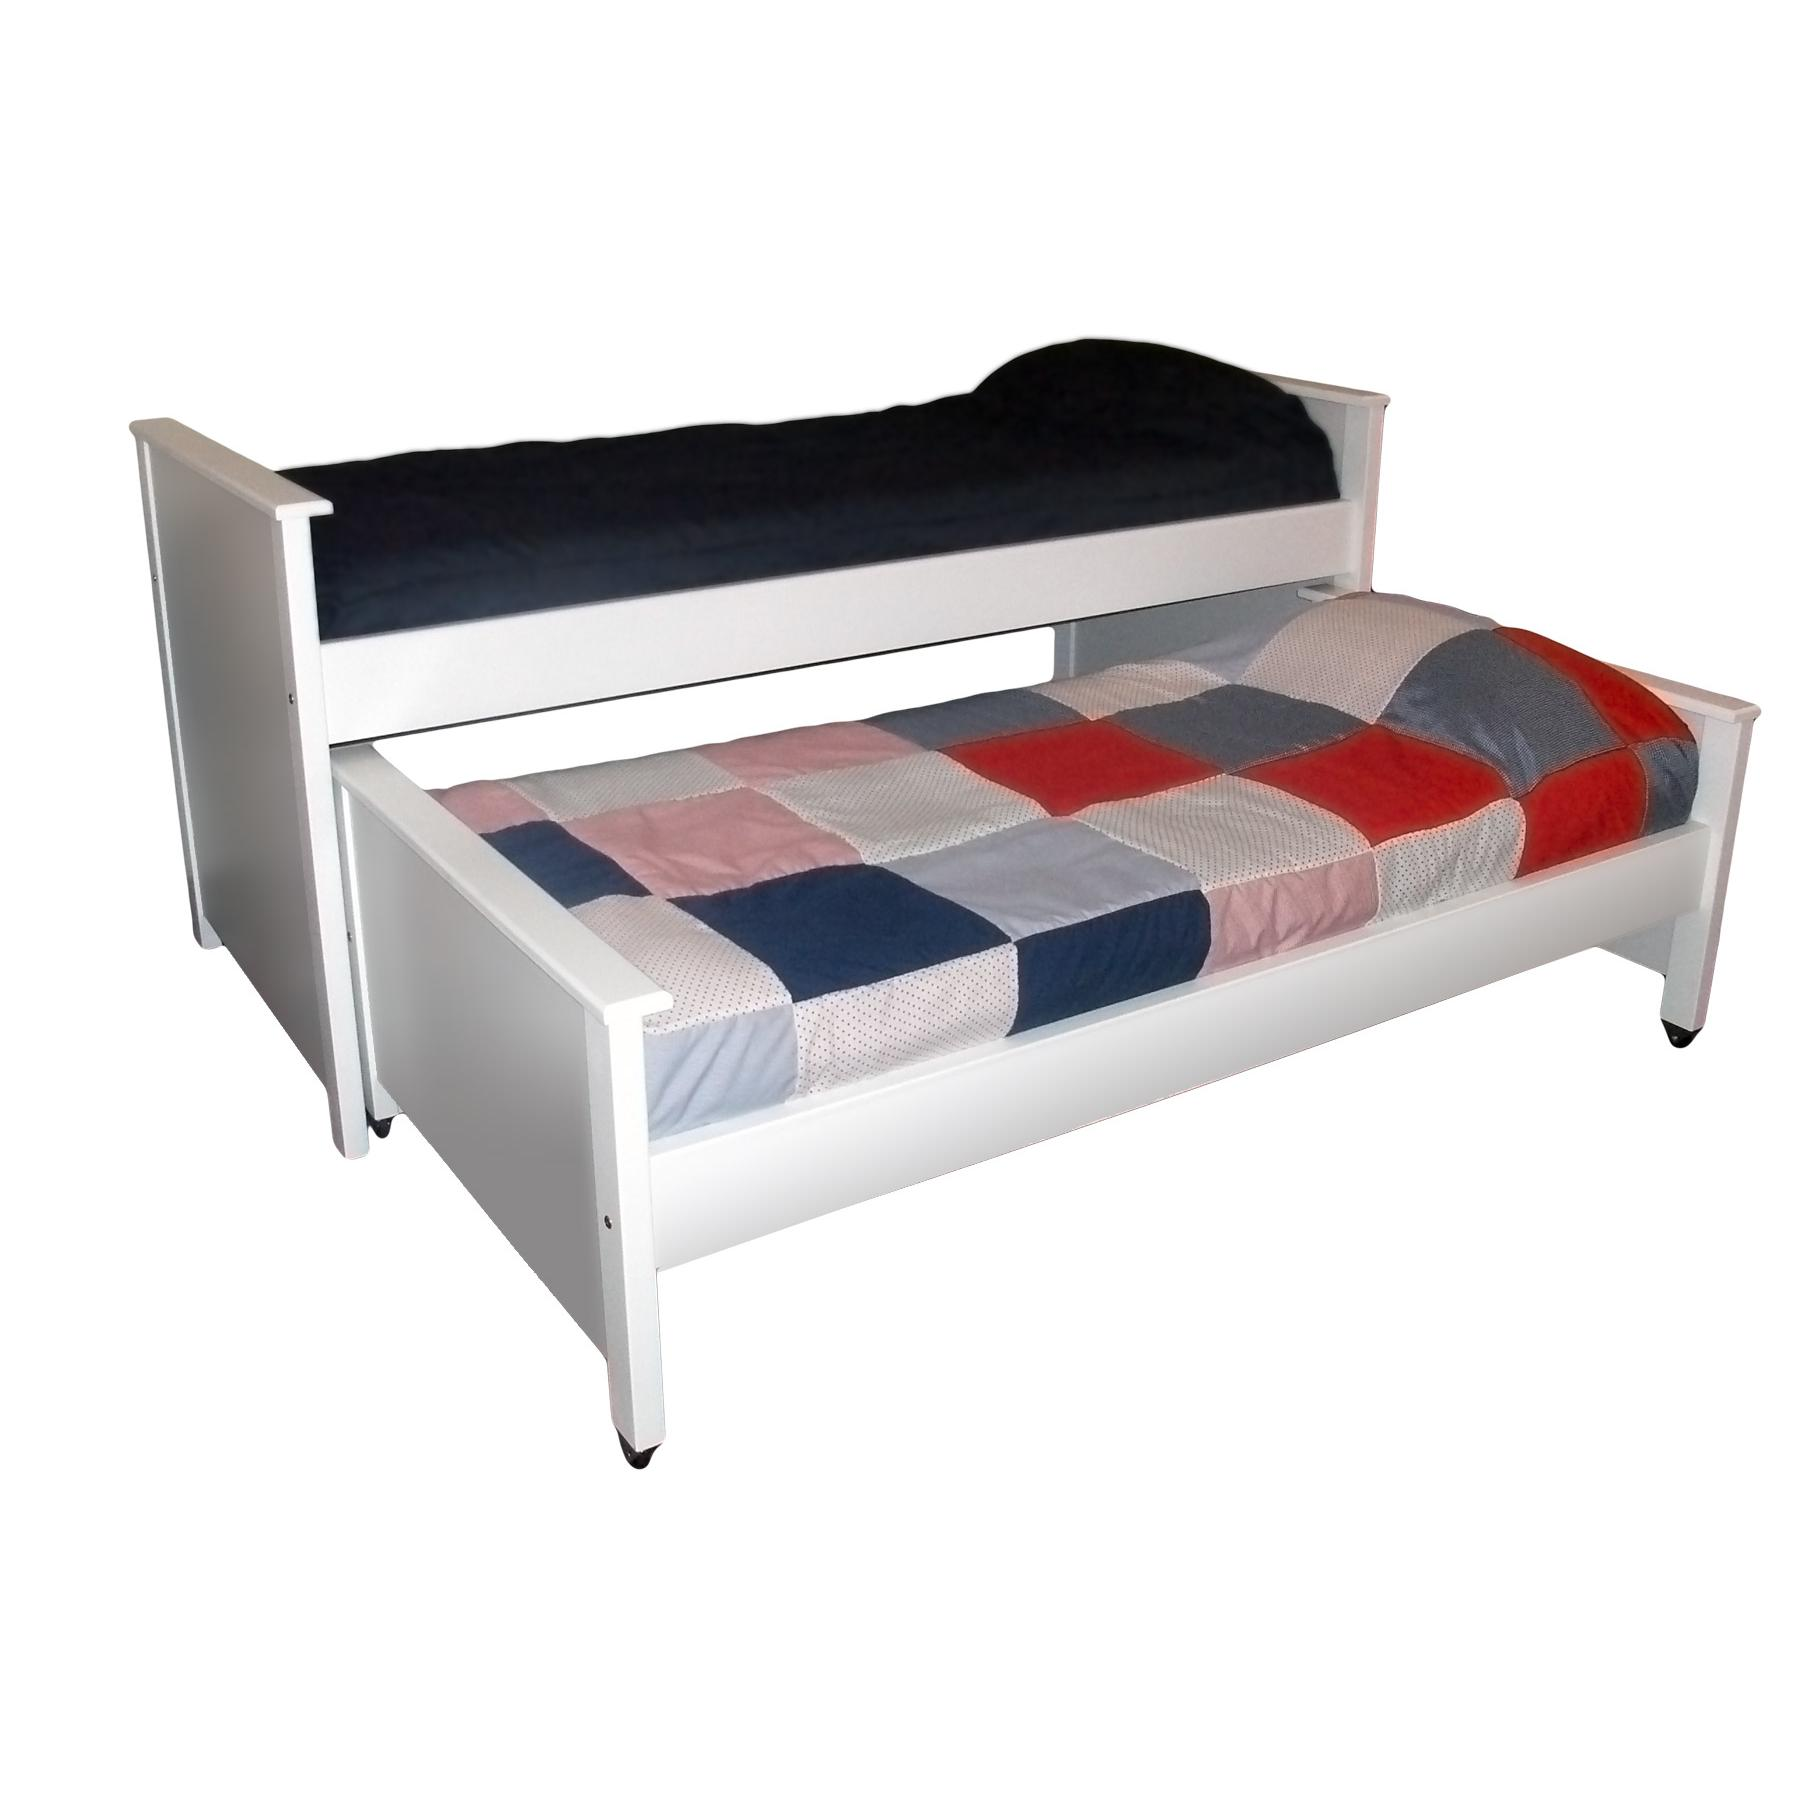 Cama nido doble nest f brica de muebles grupo veta for Cama nido doble barata